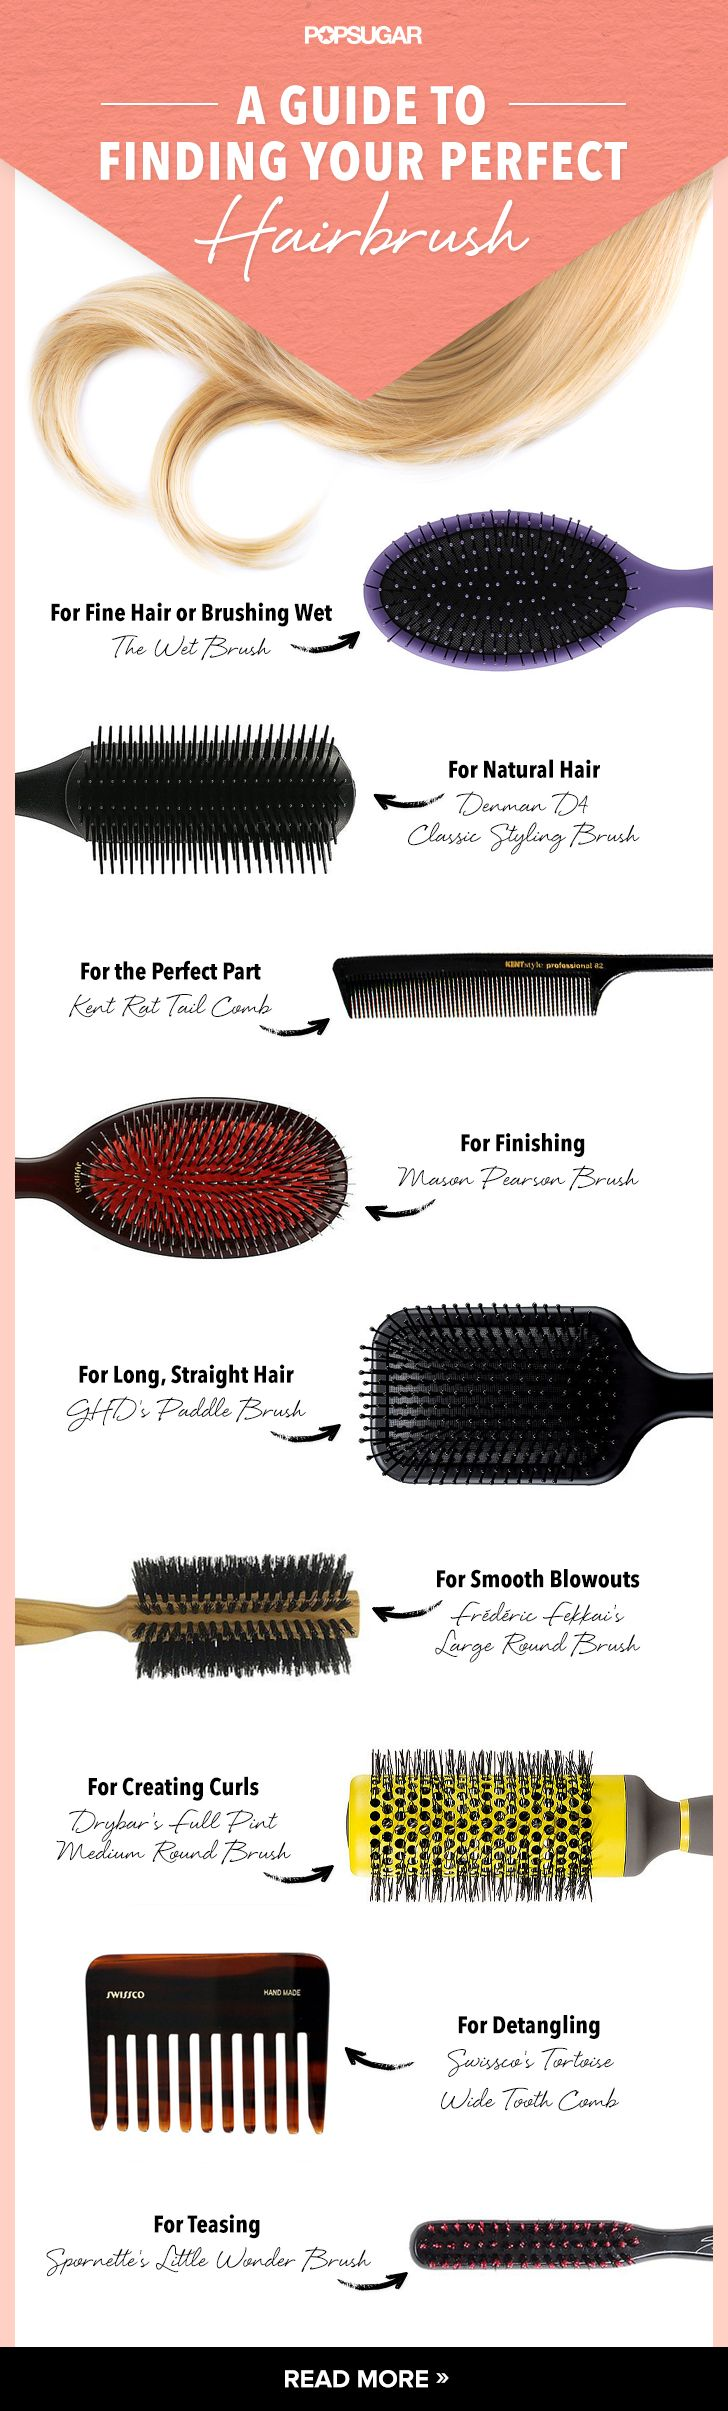 Not sure which hairbrush you should be using? This guide helps you find the best brush for your hair type, length, and texture.